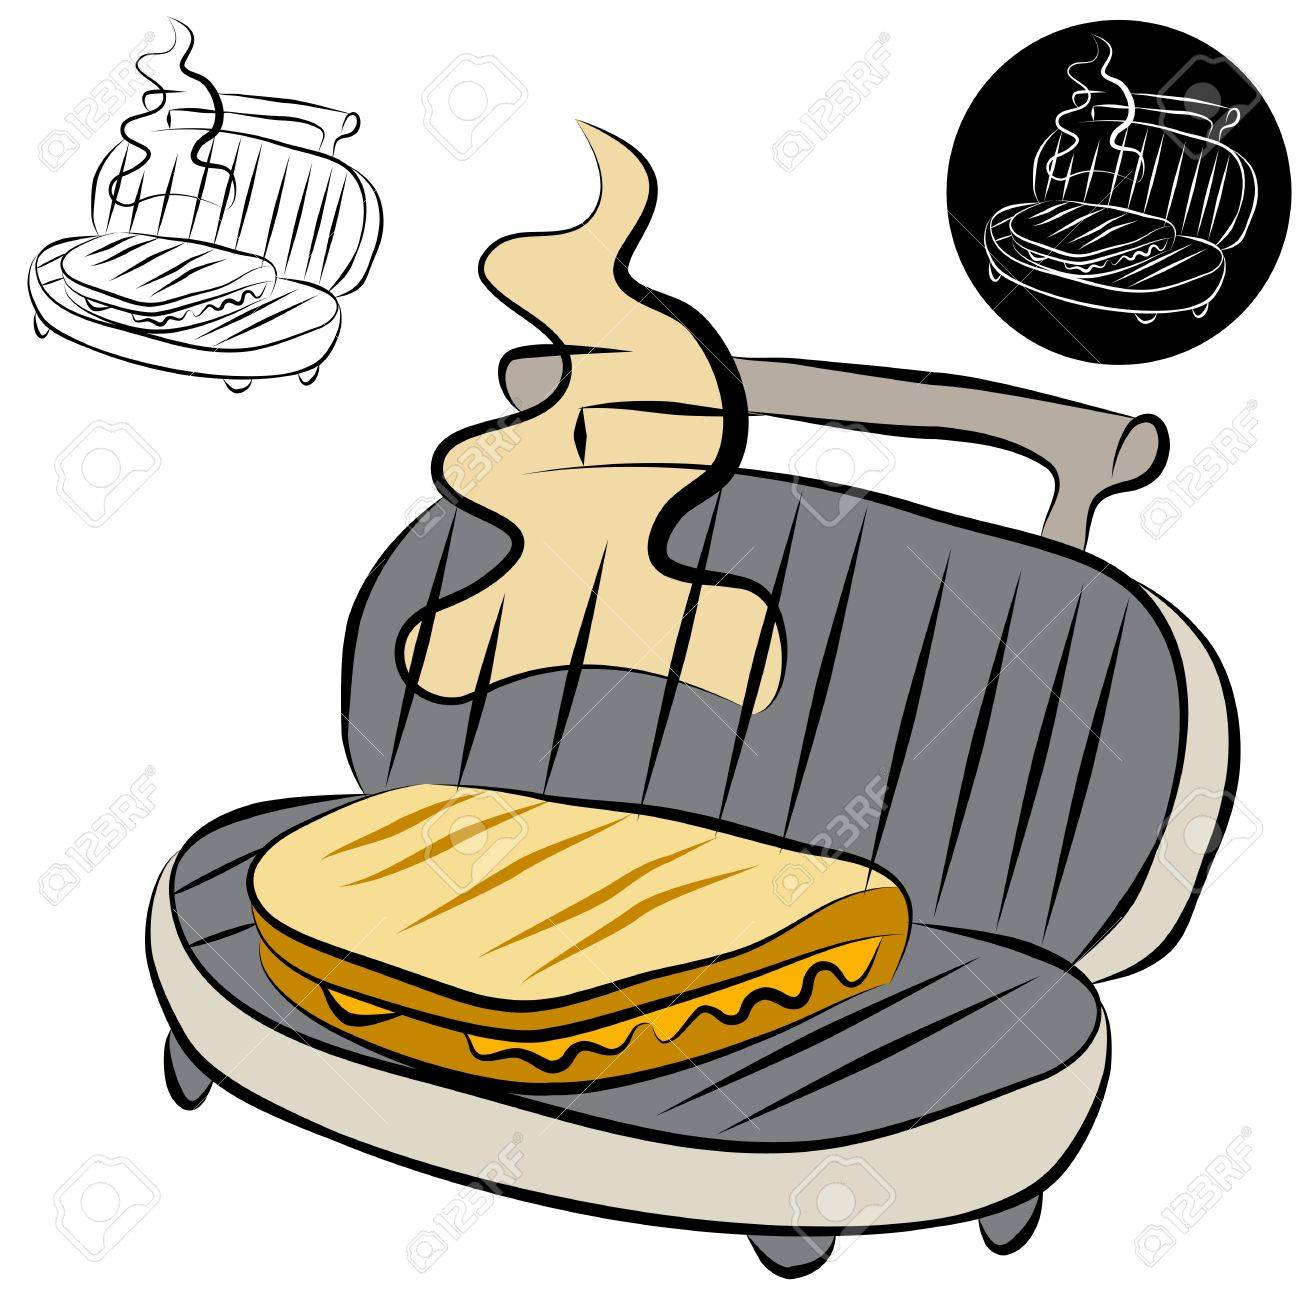 An Image Of A Panini Press Sandwich Maker Line Drawing. Royalty Free ...